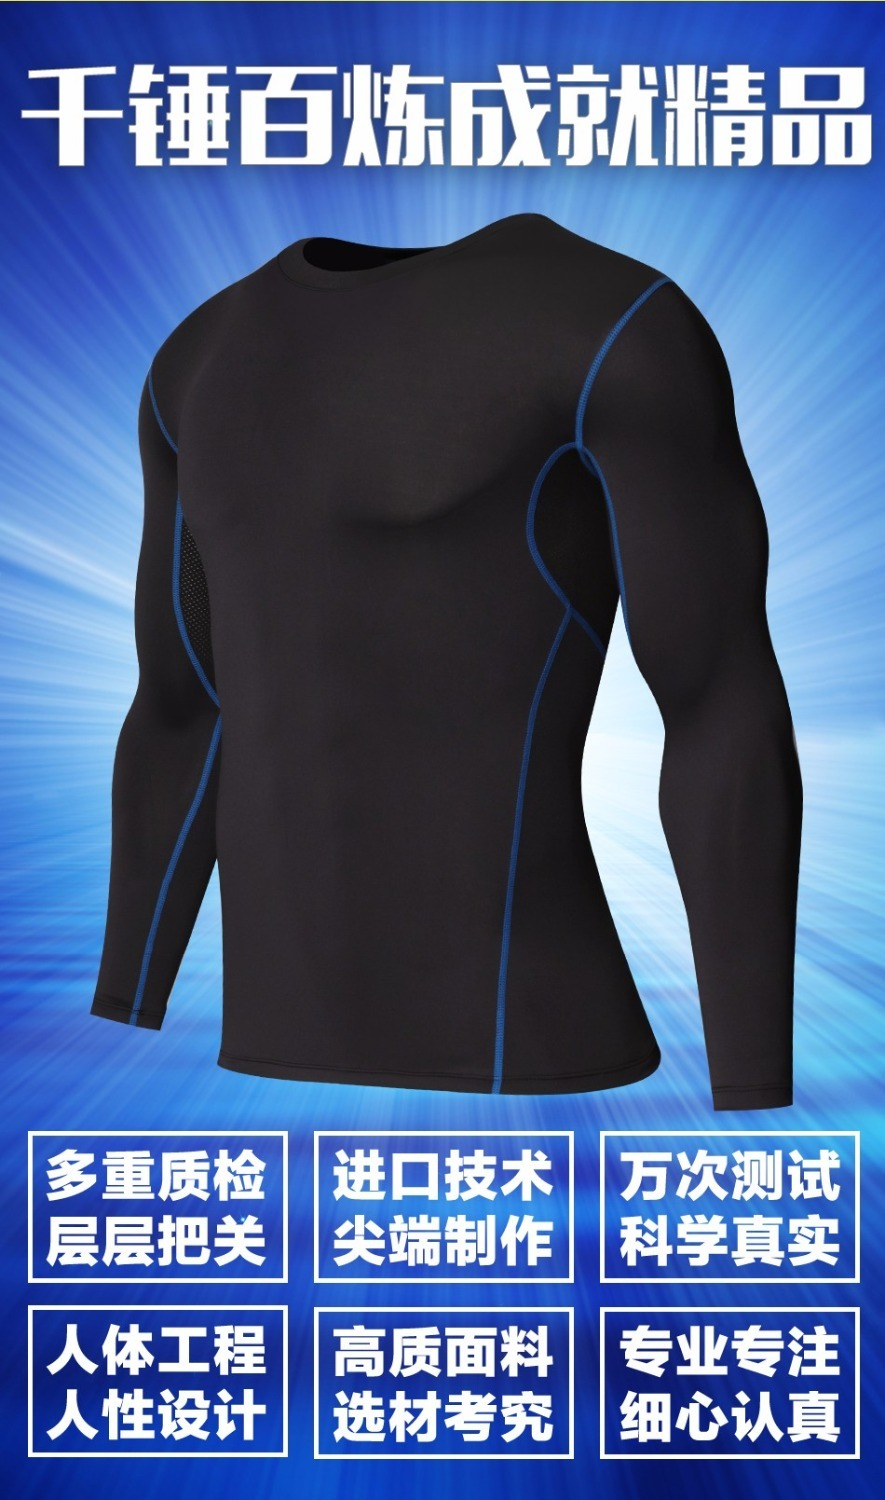 Foto from the right of t-shirt Men's compression t-shirt & pants for sport. 2 pieces Men's compression t-shirt & pants for sport